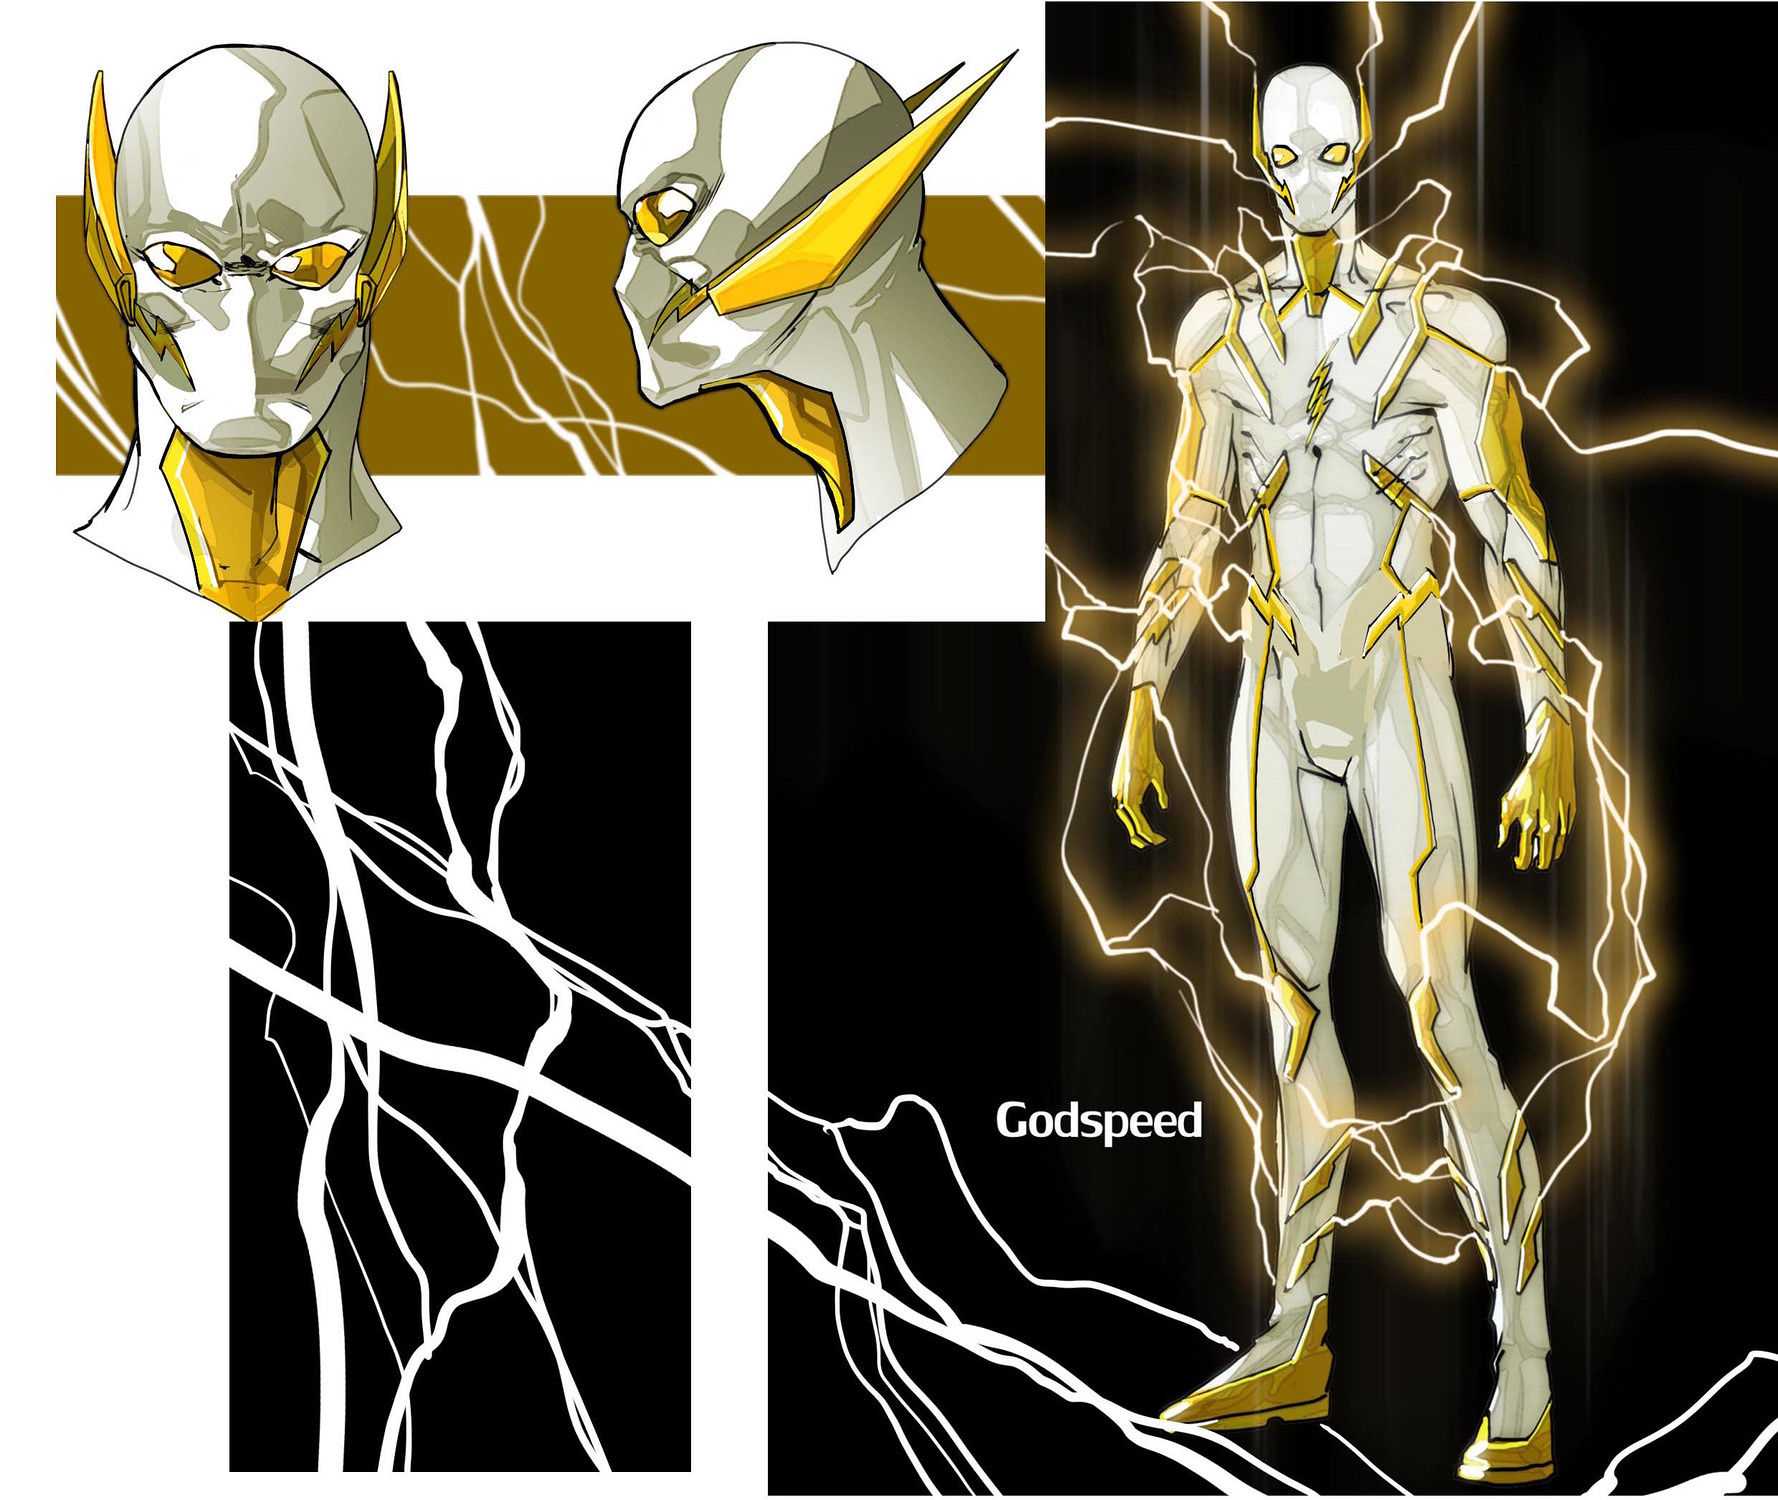 dc-announces-new-the-flash-villain-named-godspeed-here-s-what-we-know-909229